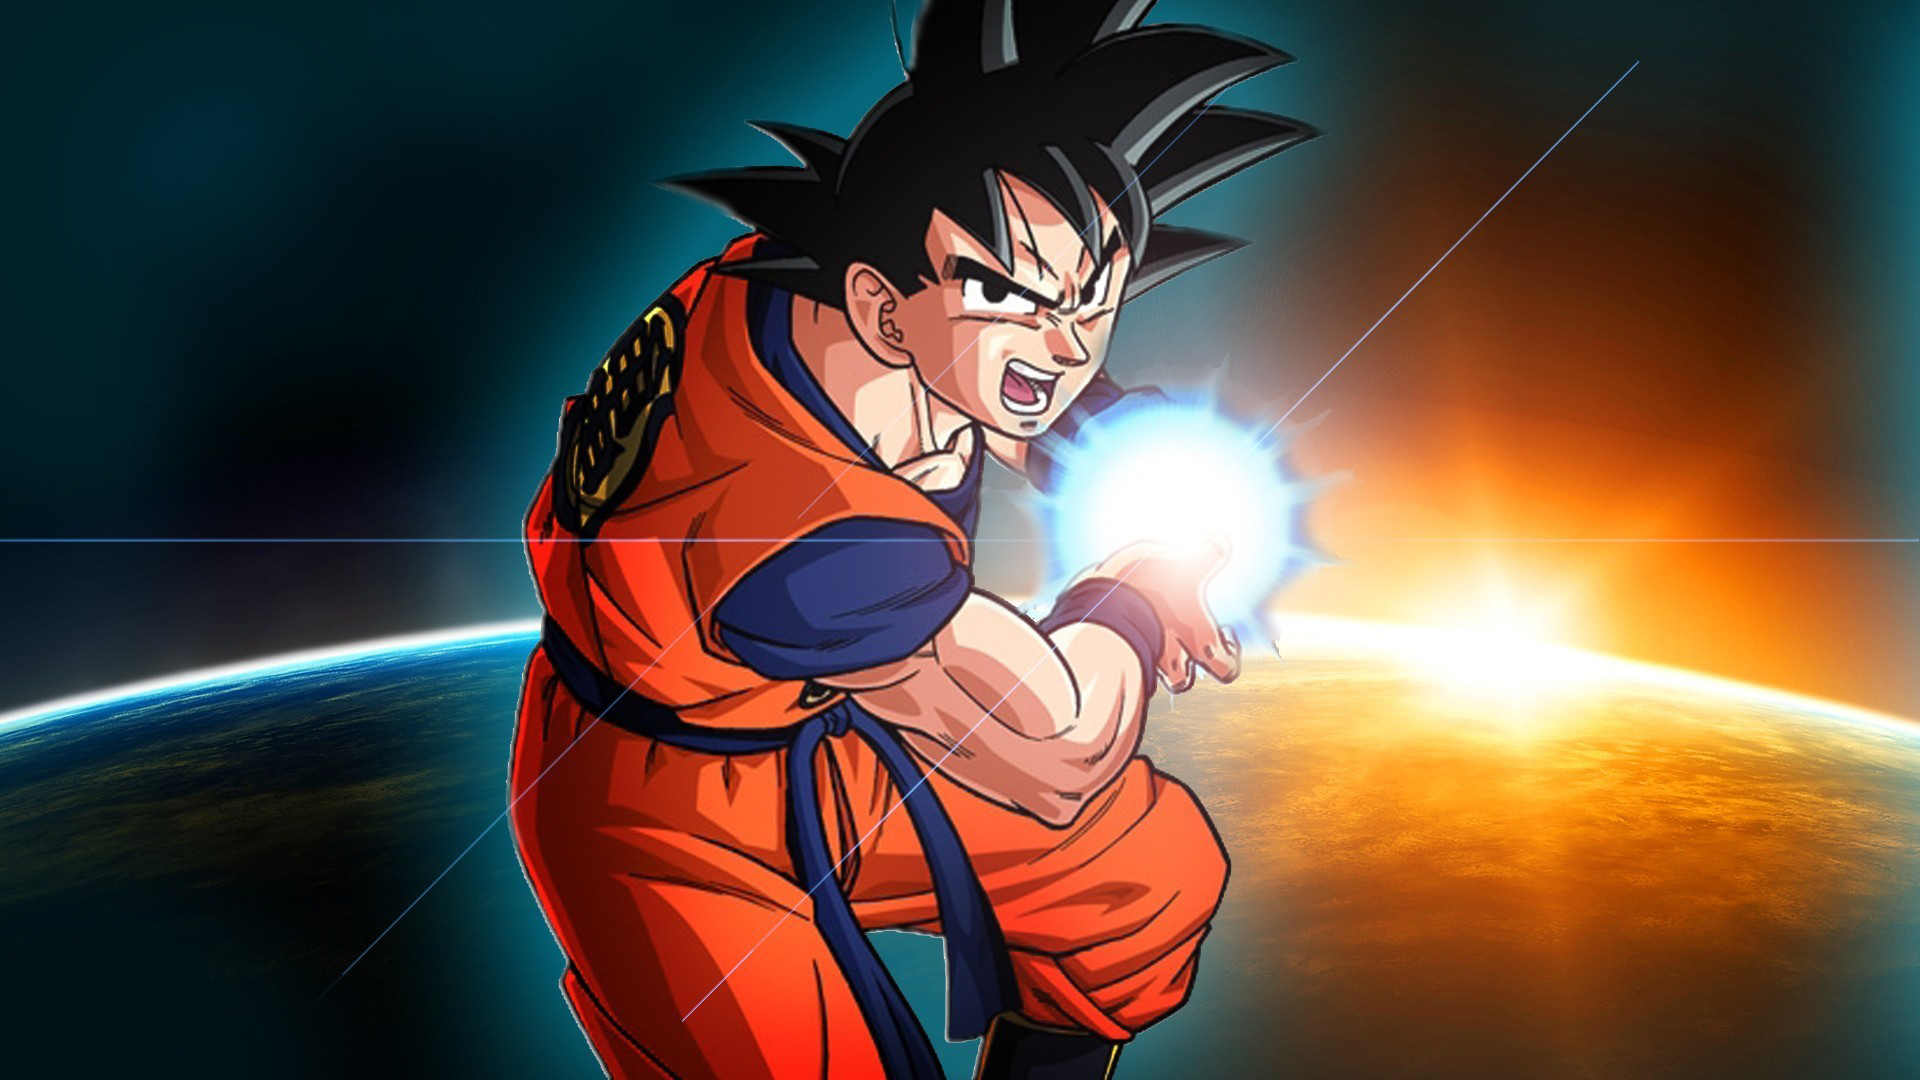 Wallpaper Hd 1080p Free Download For Mobile Goku Backgrounds Free Download Hd Wallpapers